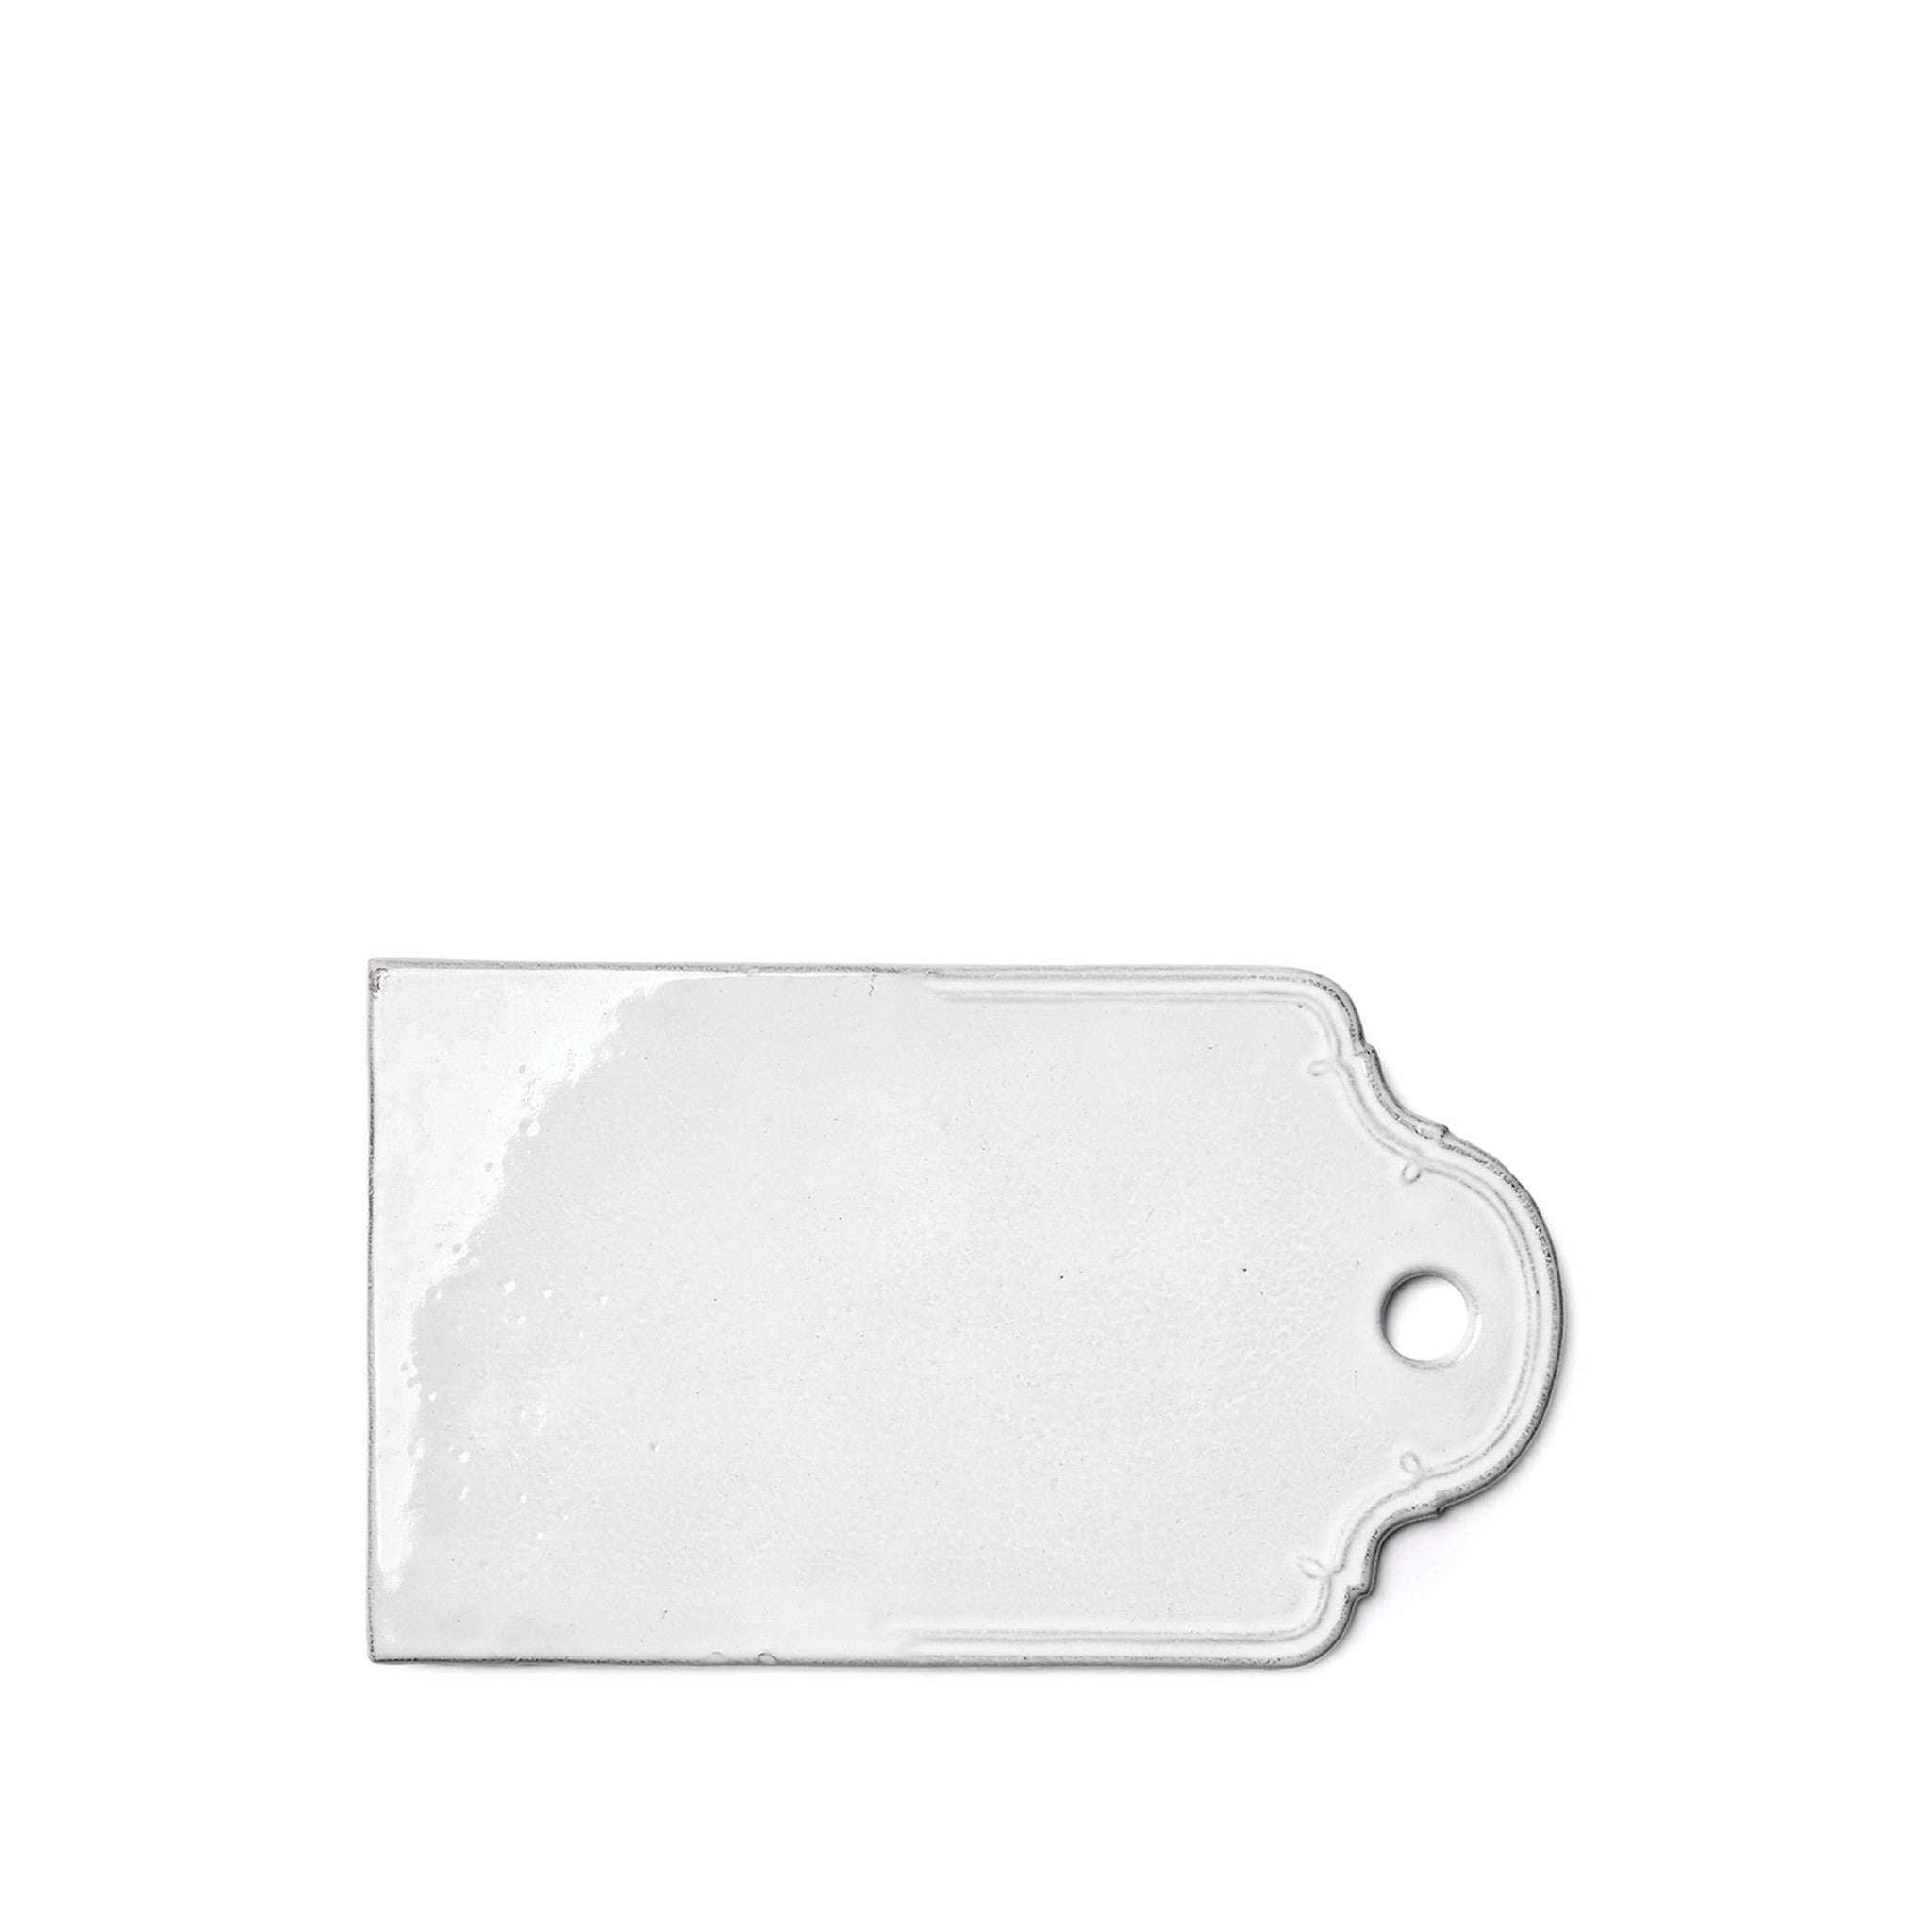 Colbert Cutting Board One by Astier de Villatte